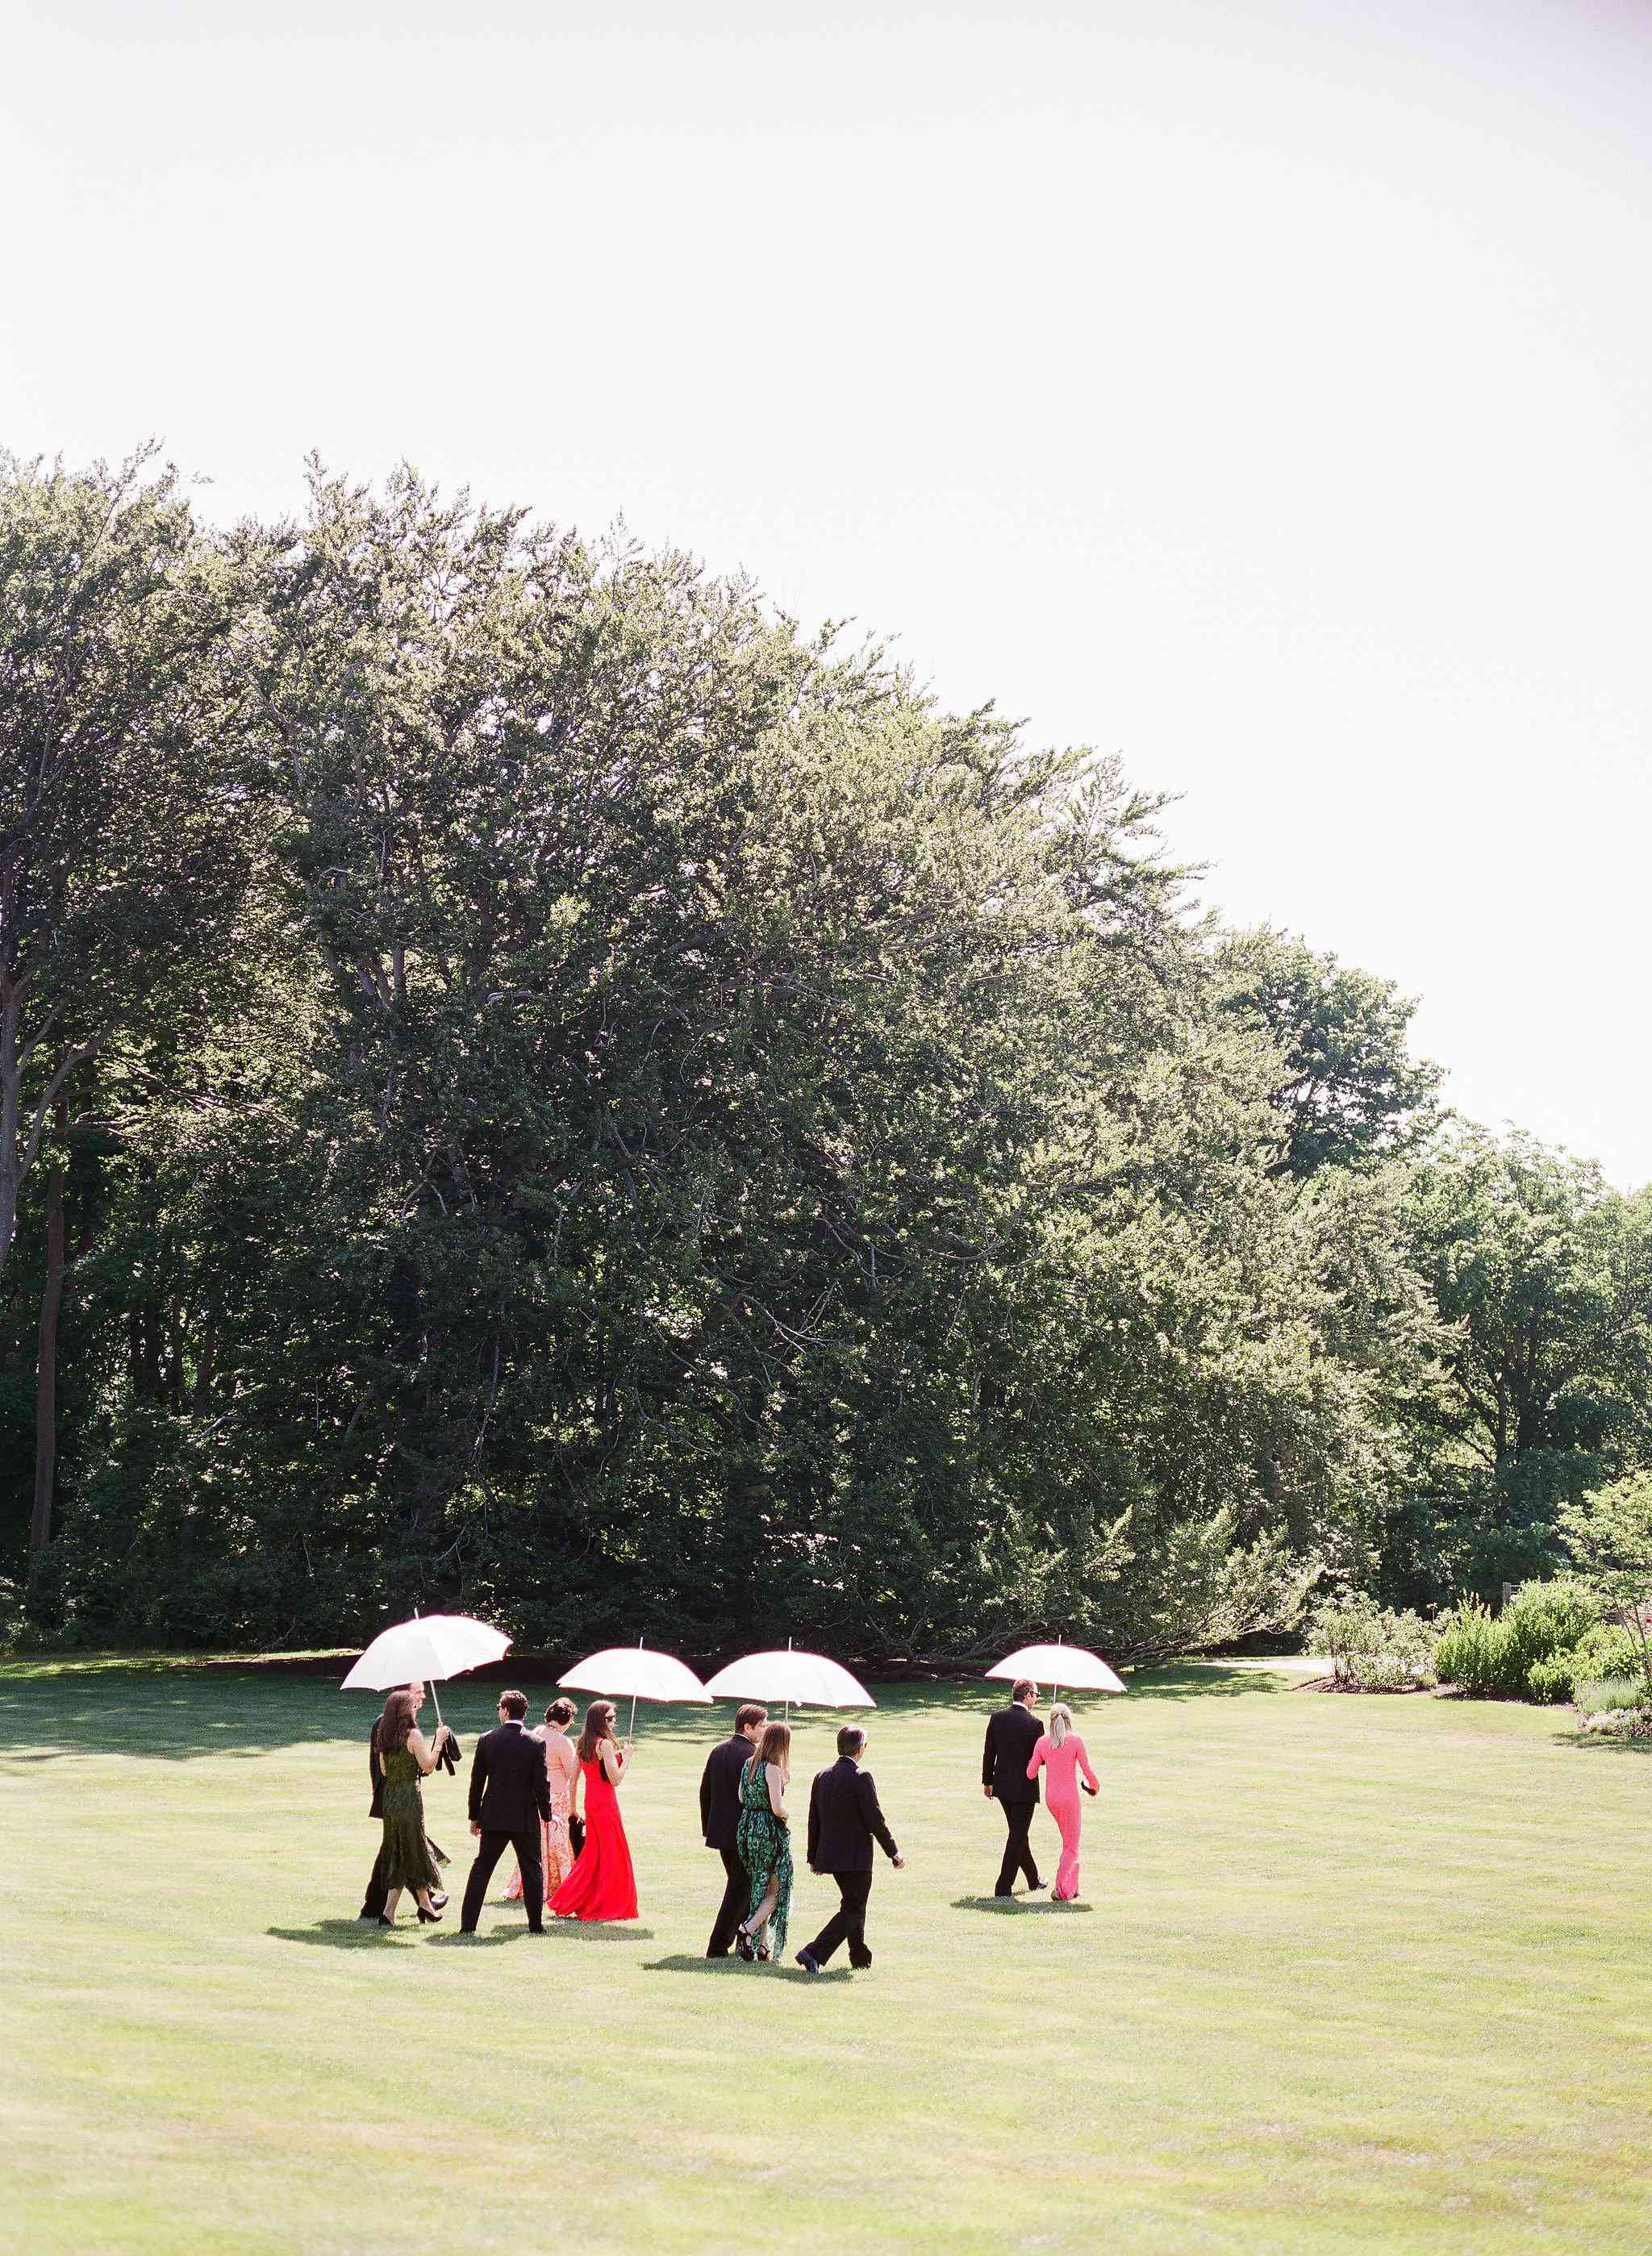 Guests walking to a wedding holding umbrellas